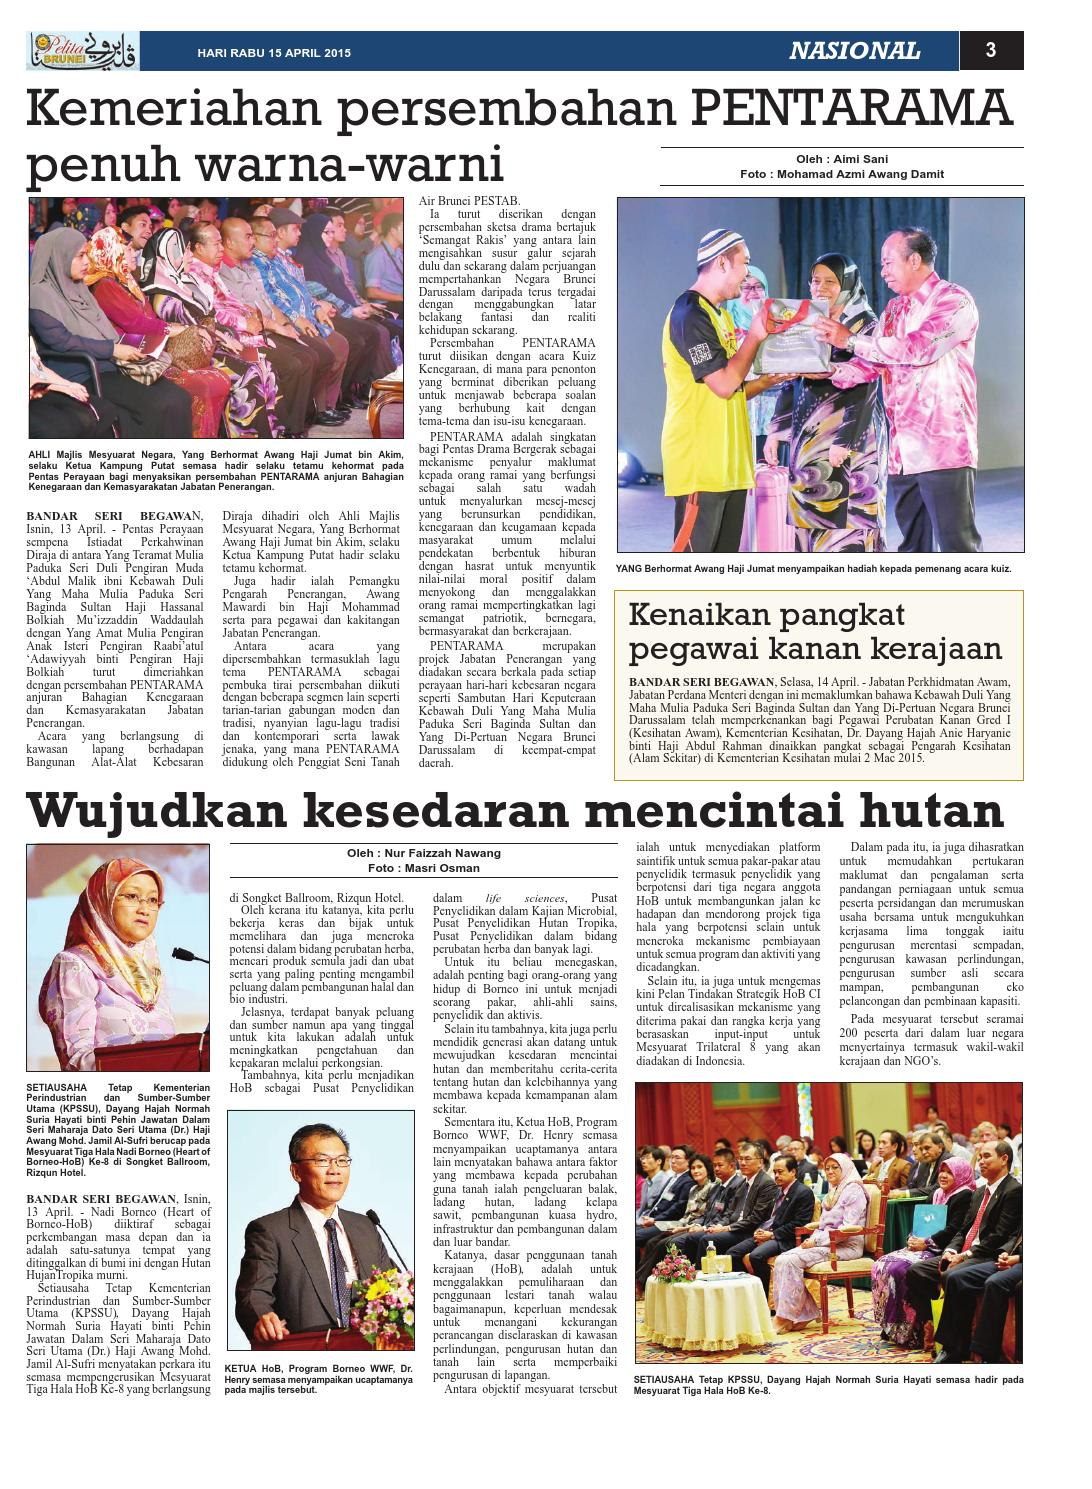 Pelita Brunei Rabu 15 April 2015 By Putera Katak Brunei Issuu